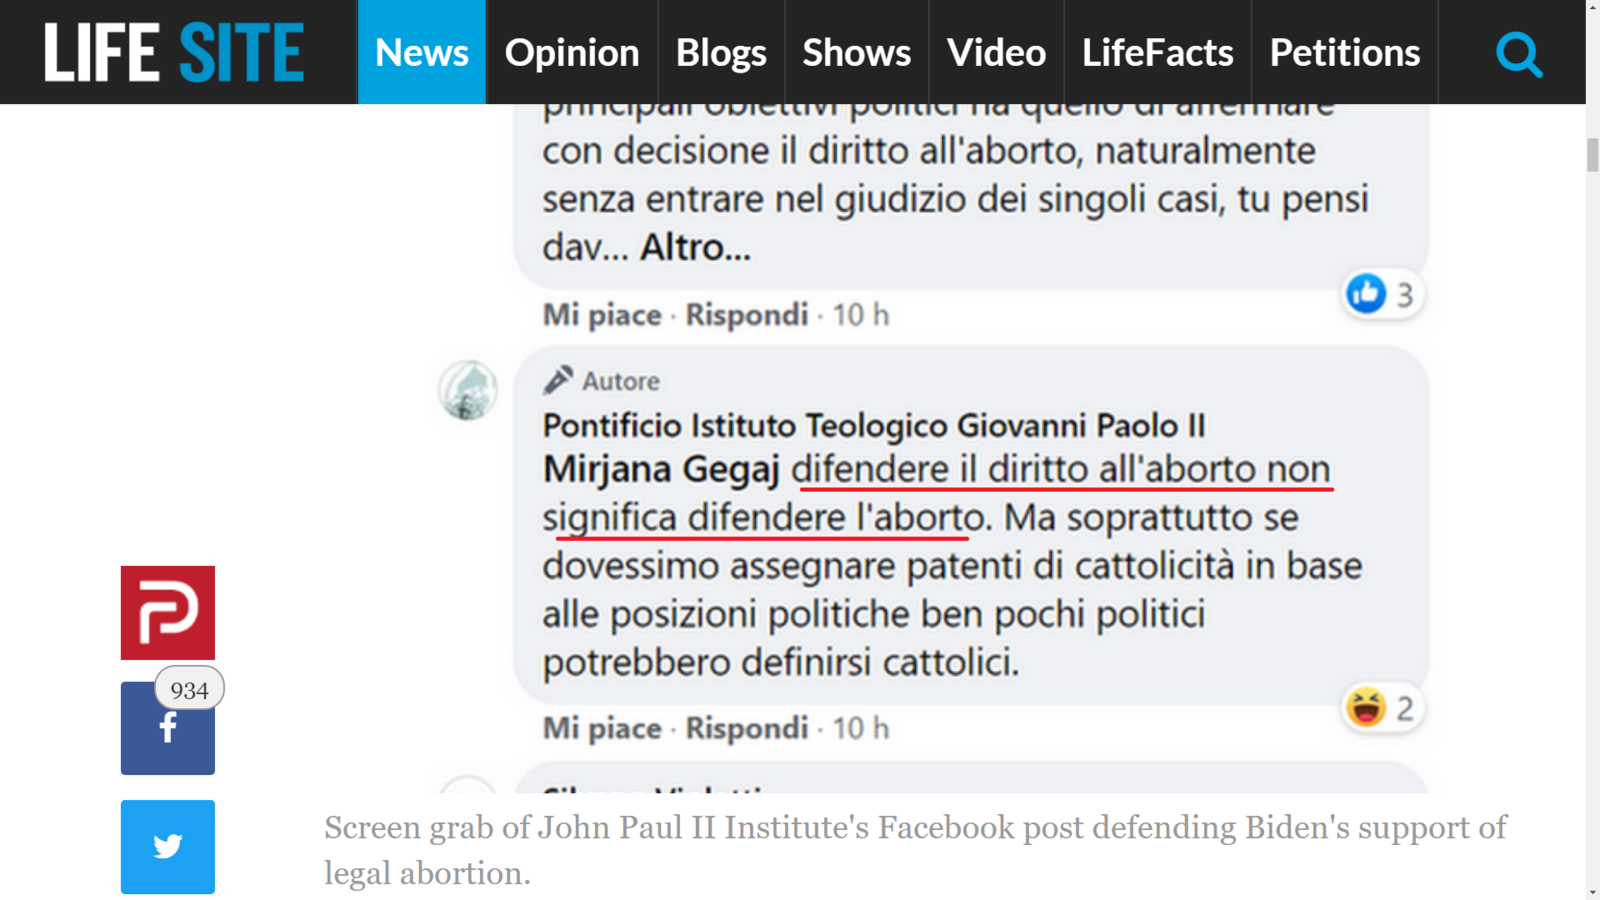 Source: https://www.lifesitenews.com/news/pope-francis-remade-john-paul-ii-institute-defends-bidens-abortion-record-in-facebook-post